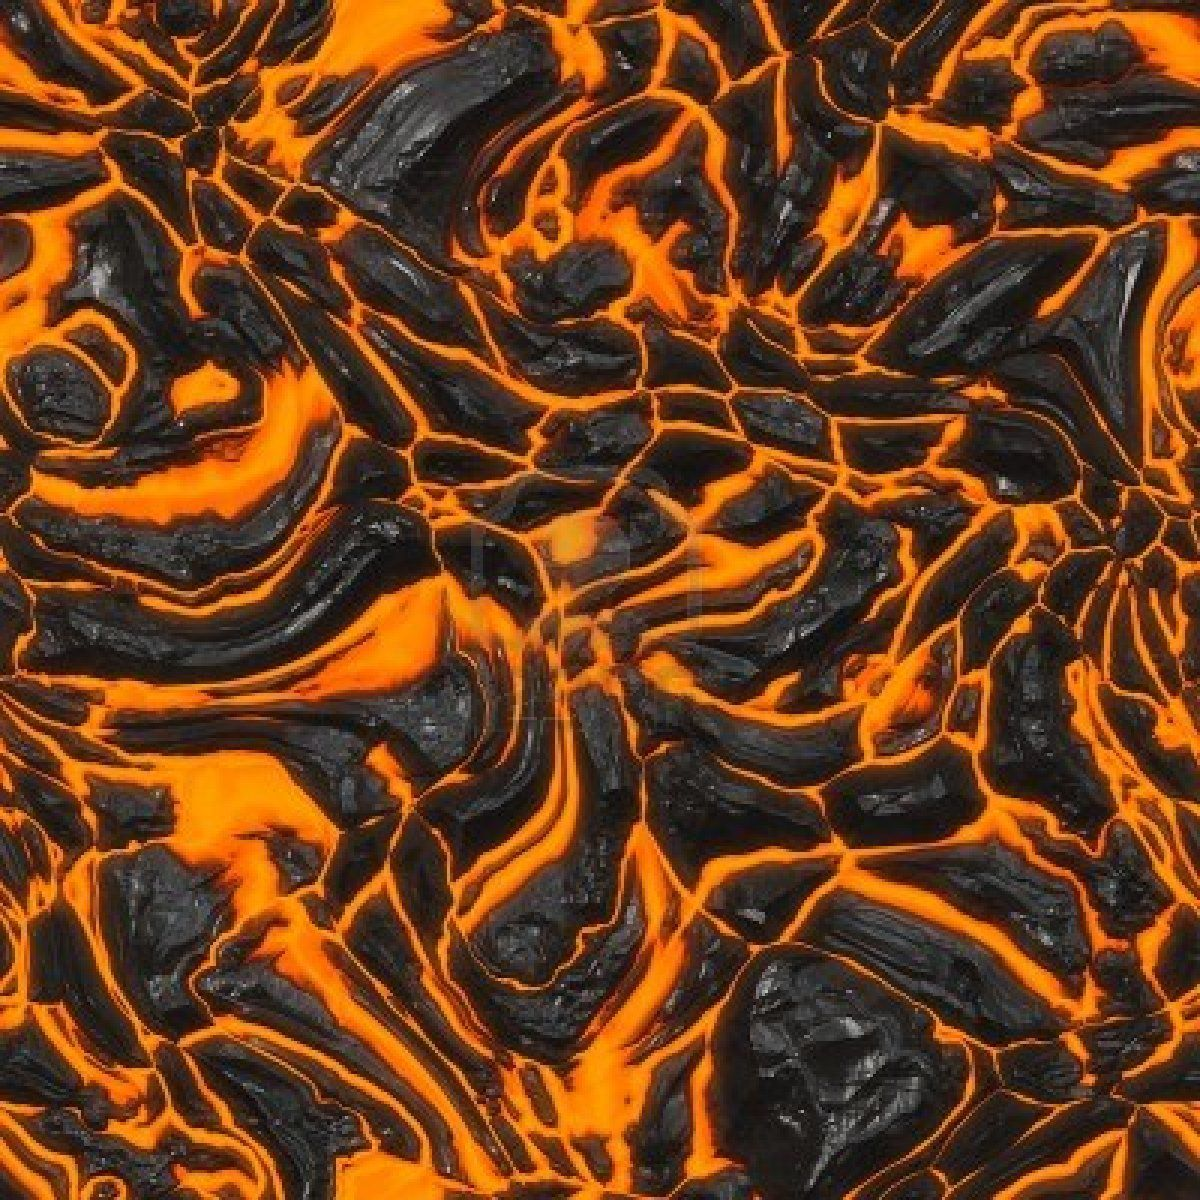 Lava texture bing images - Lava Flow Seamless Texture Tile You Could Actually Play The Floor Is Lava With This